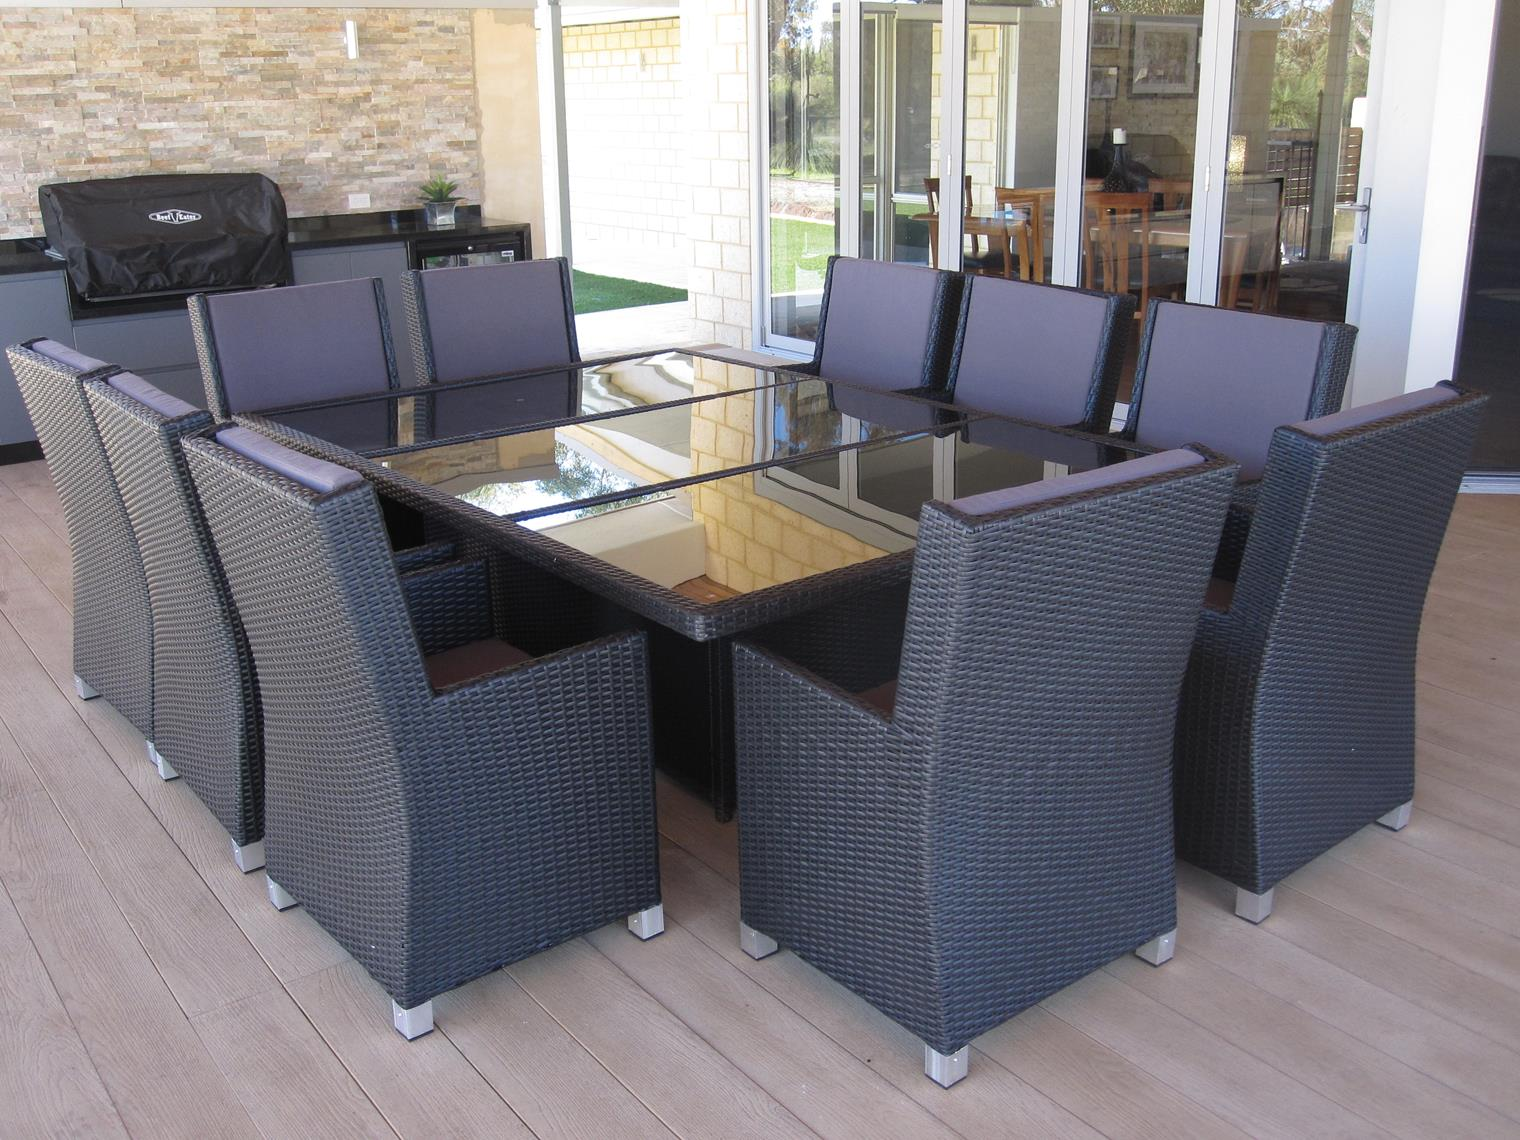 Outdoor table and chairs gumtree brisbane chairs seating for Outdoor furniture gumtree